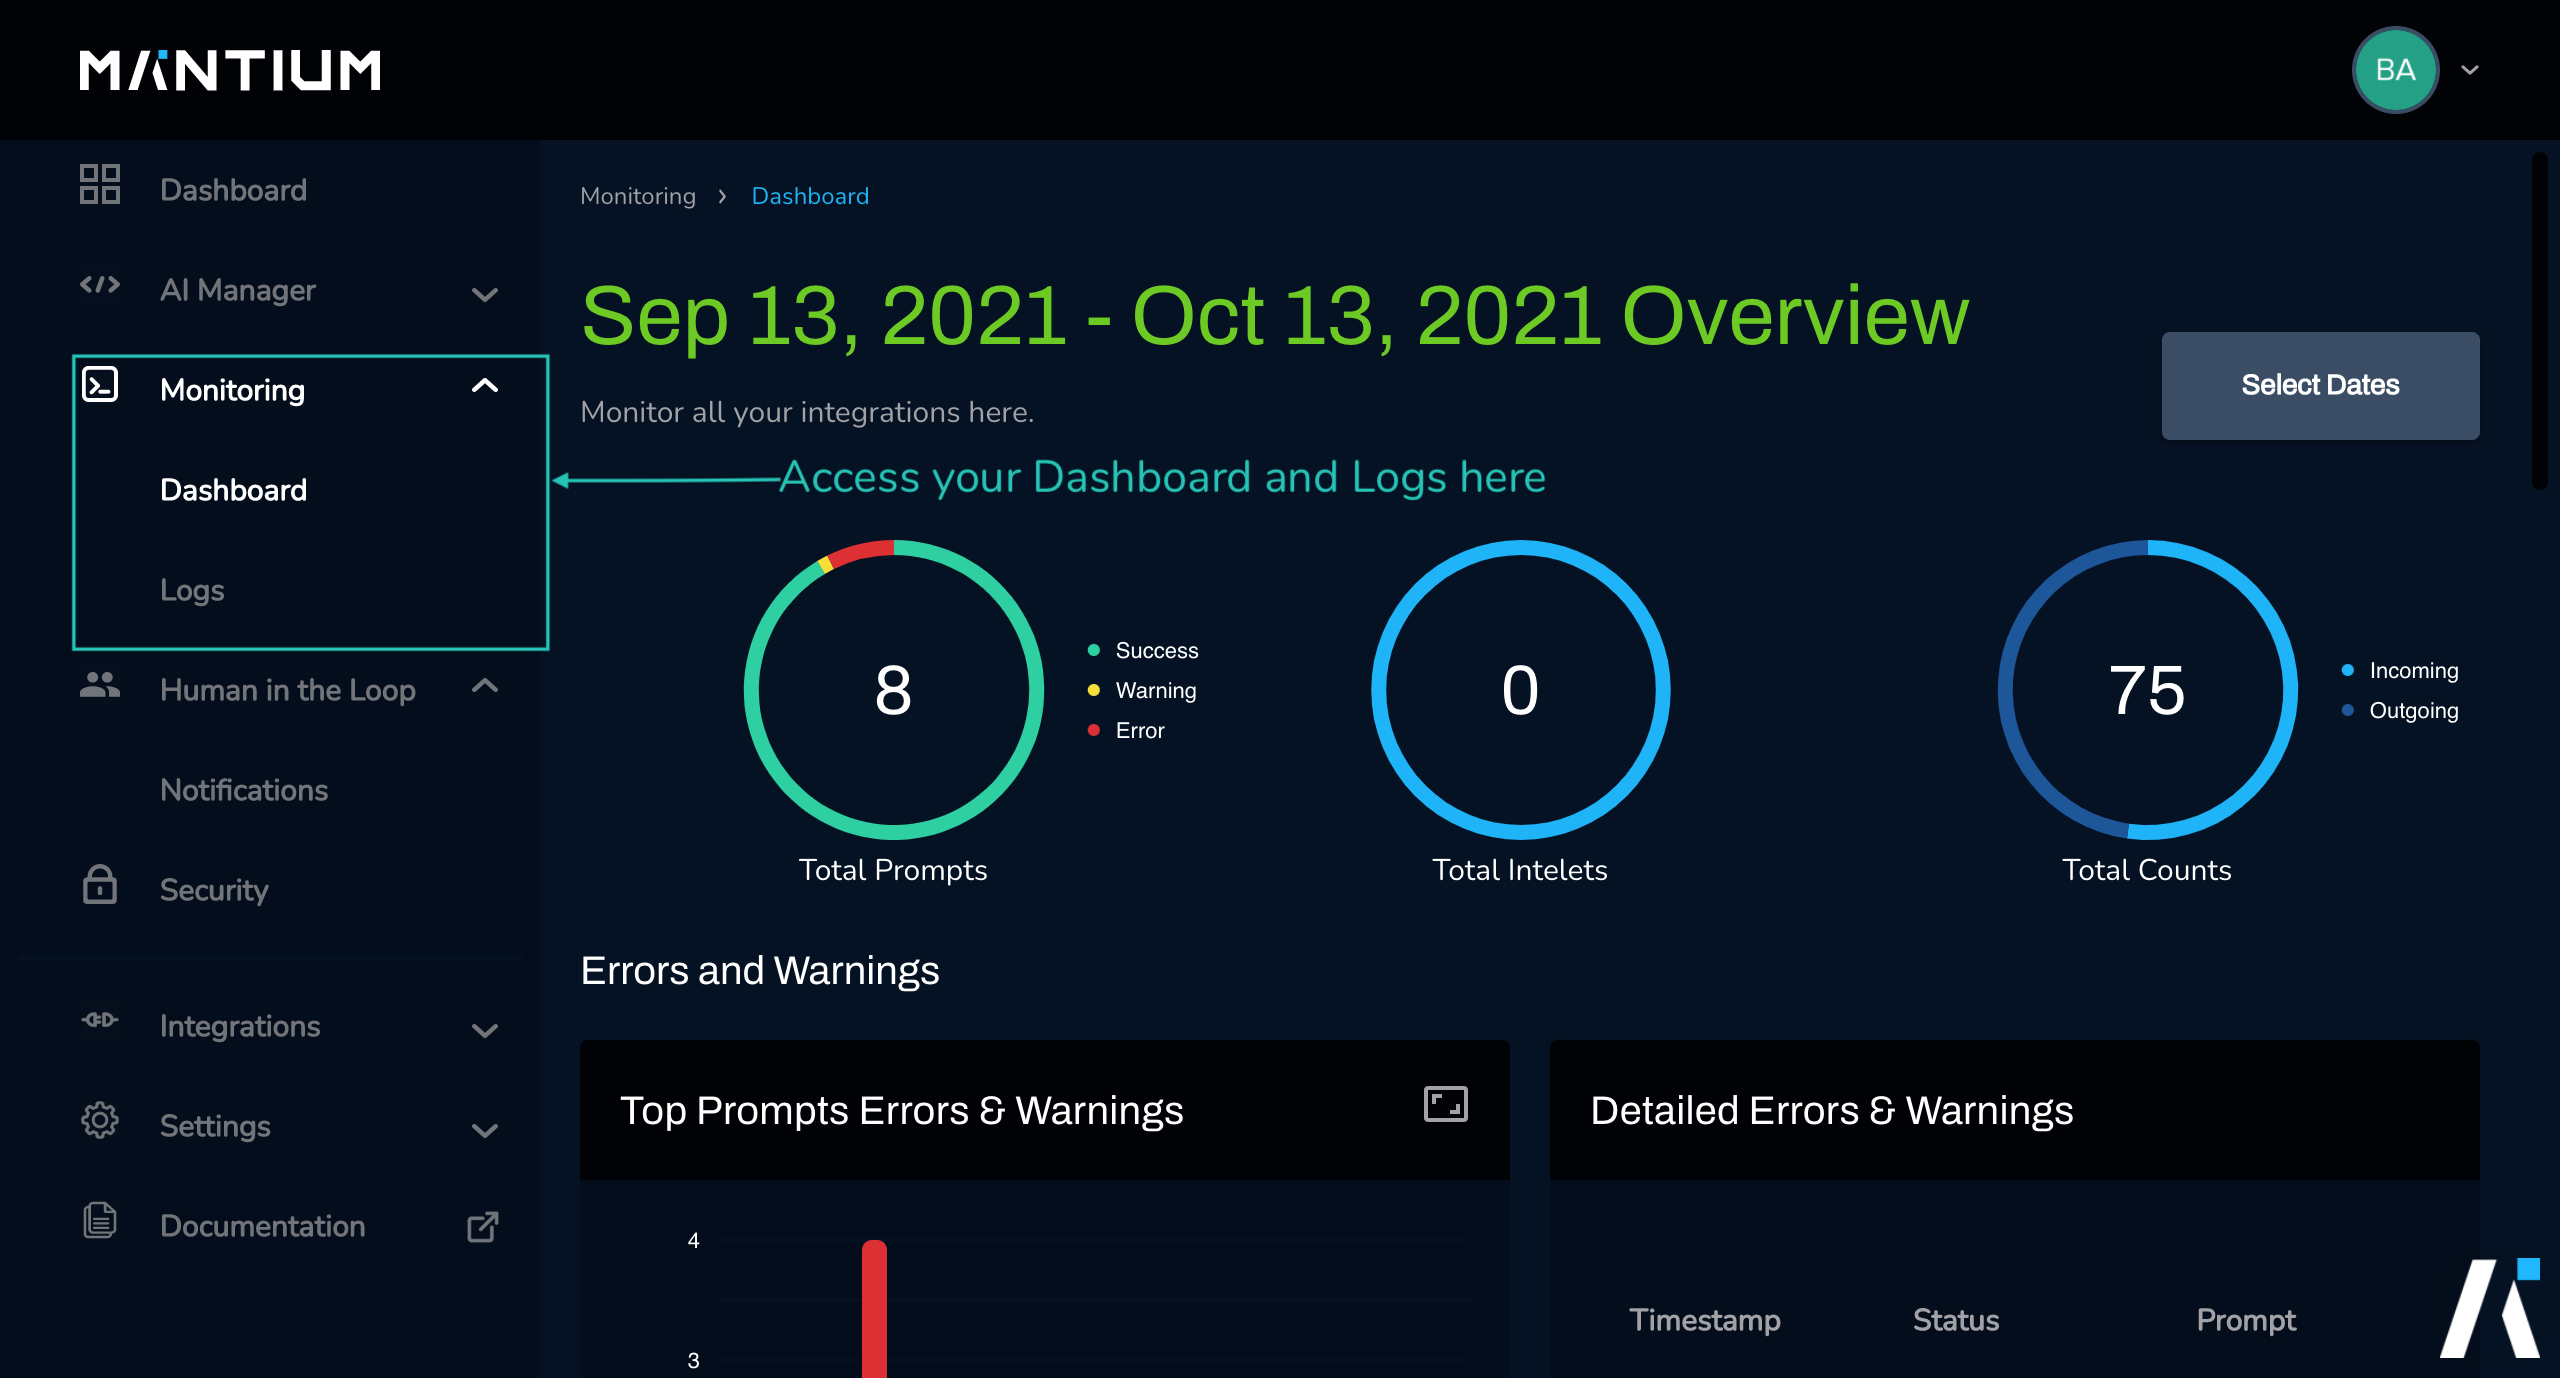 View your logs and dashboard